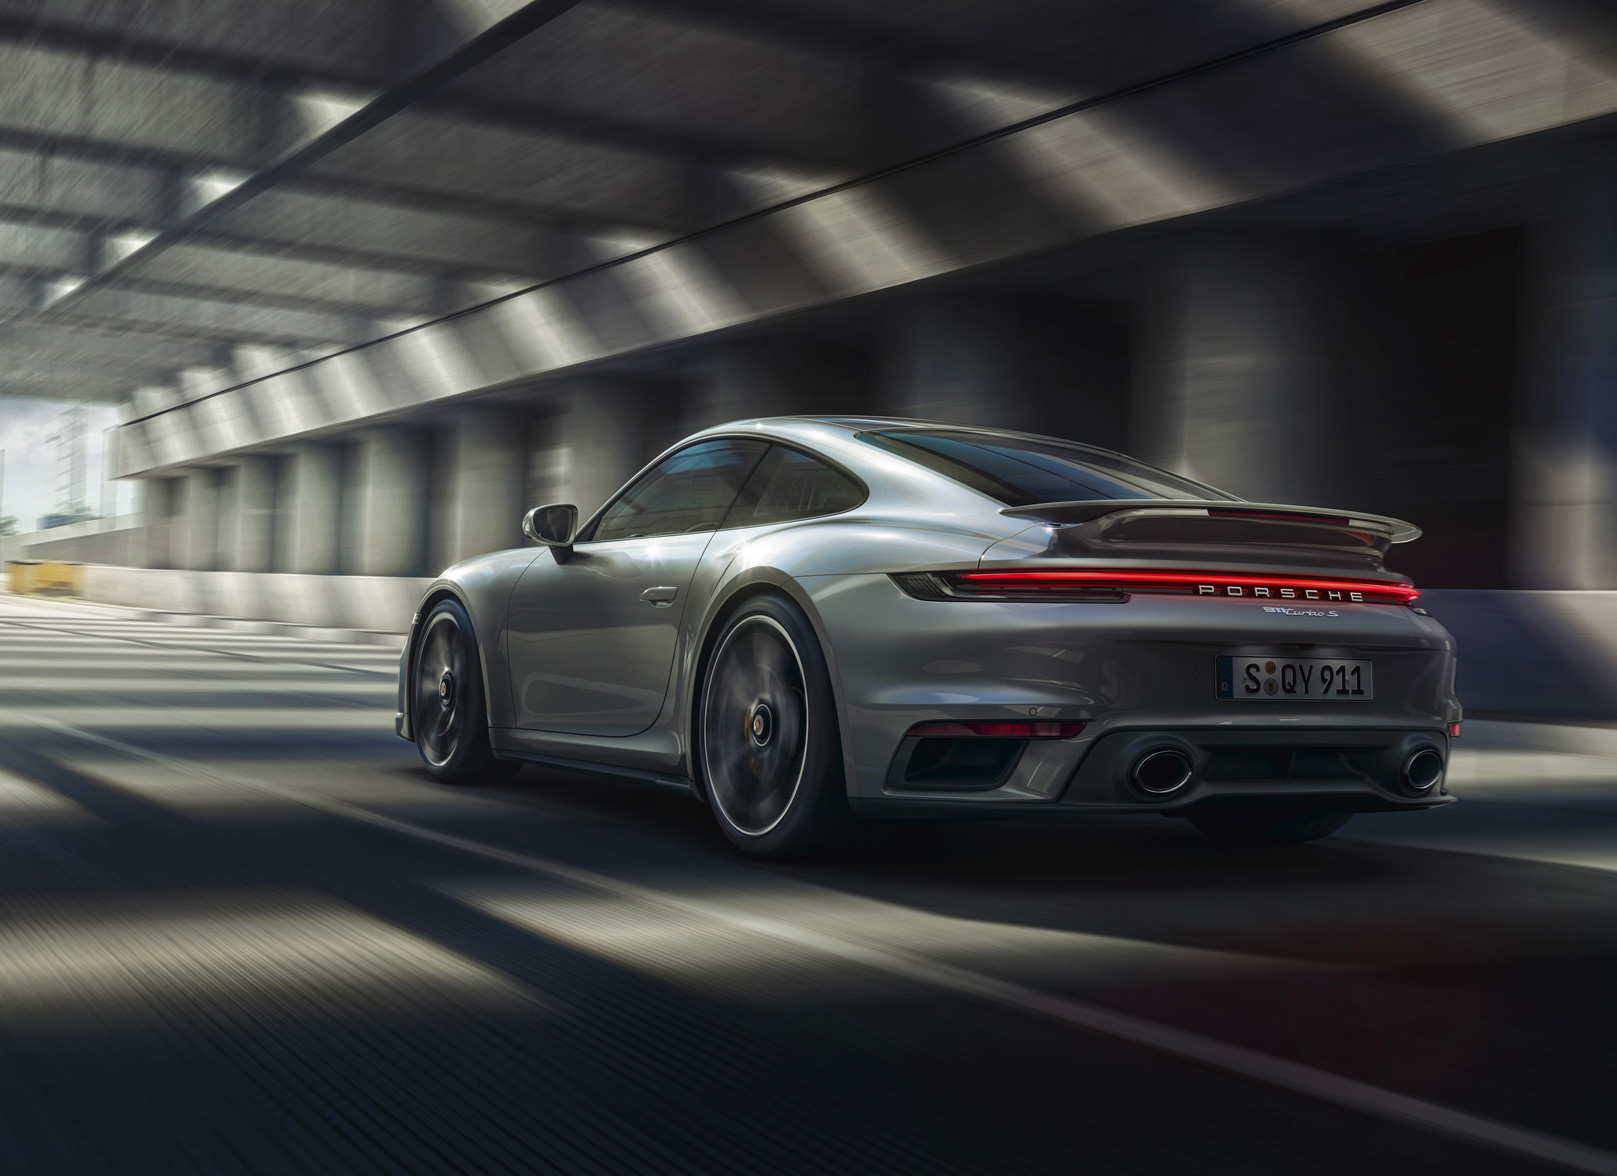 Porsche Rolls Out Faster 2021 911 S at werd.com